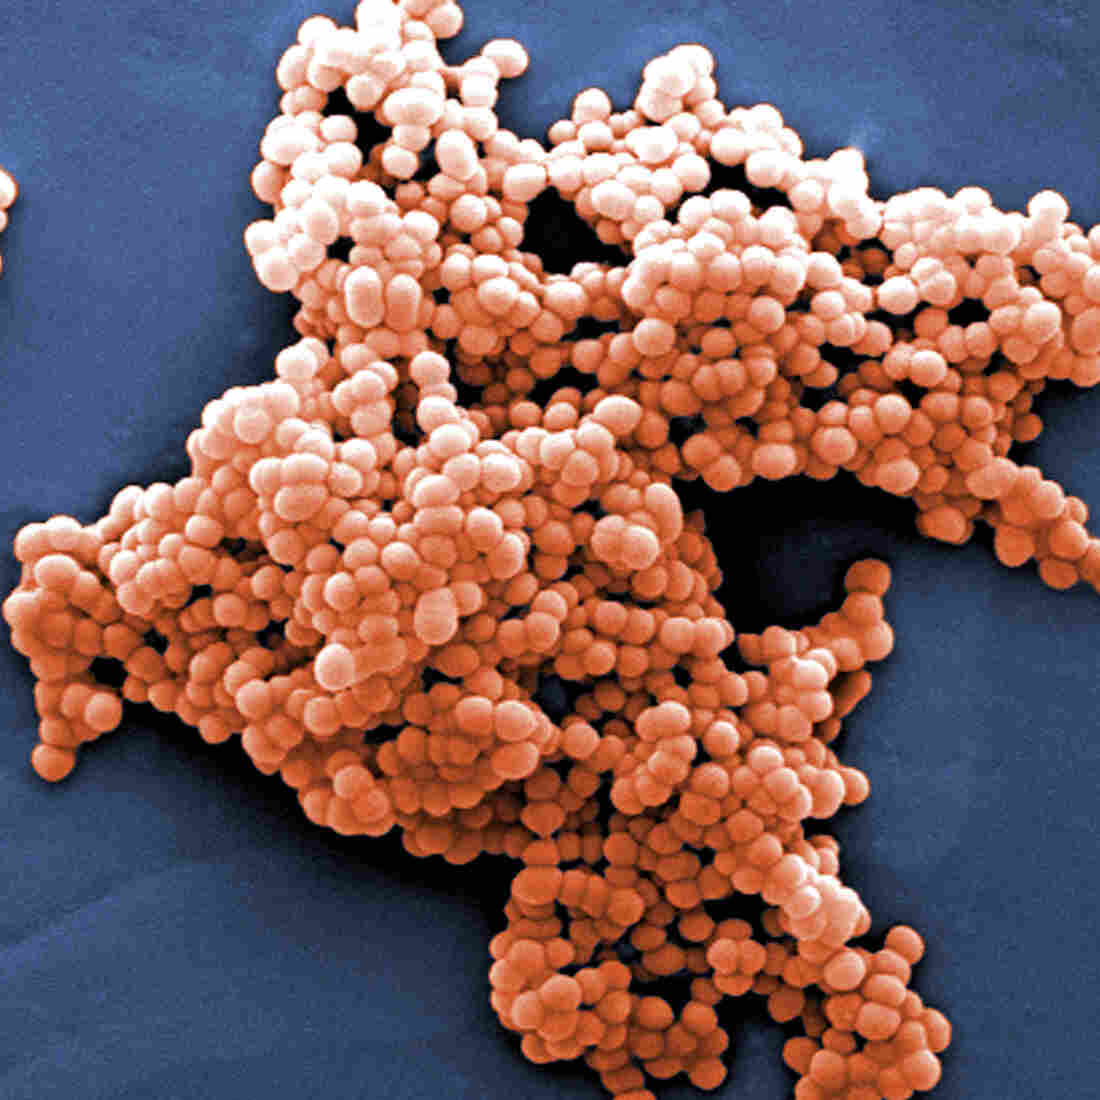 Streptococcus bacteria, like this strain, can be found in our guts.